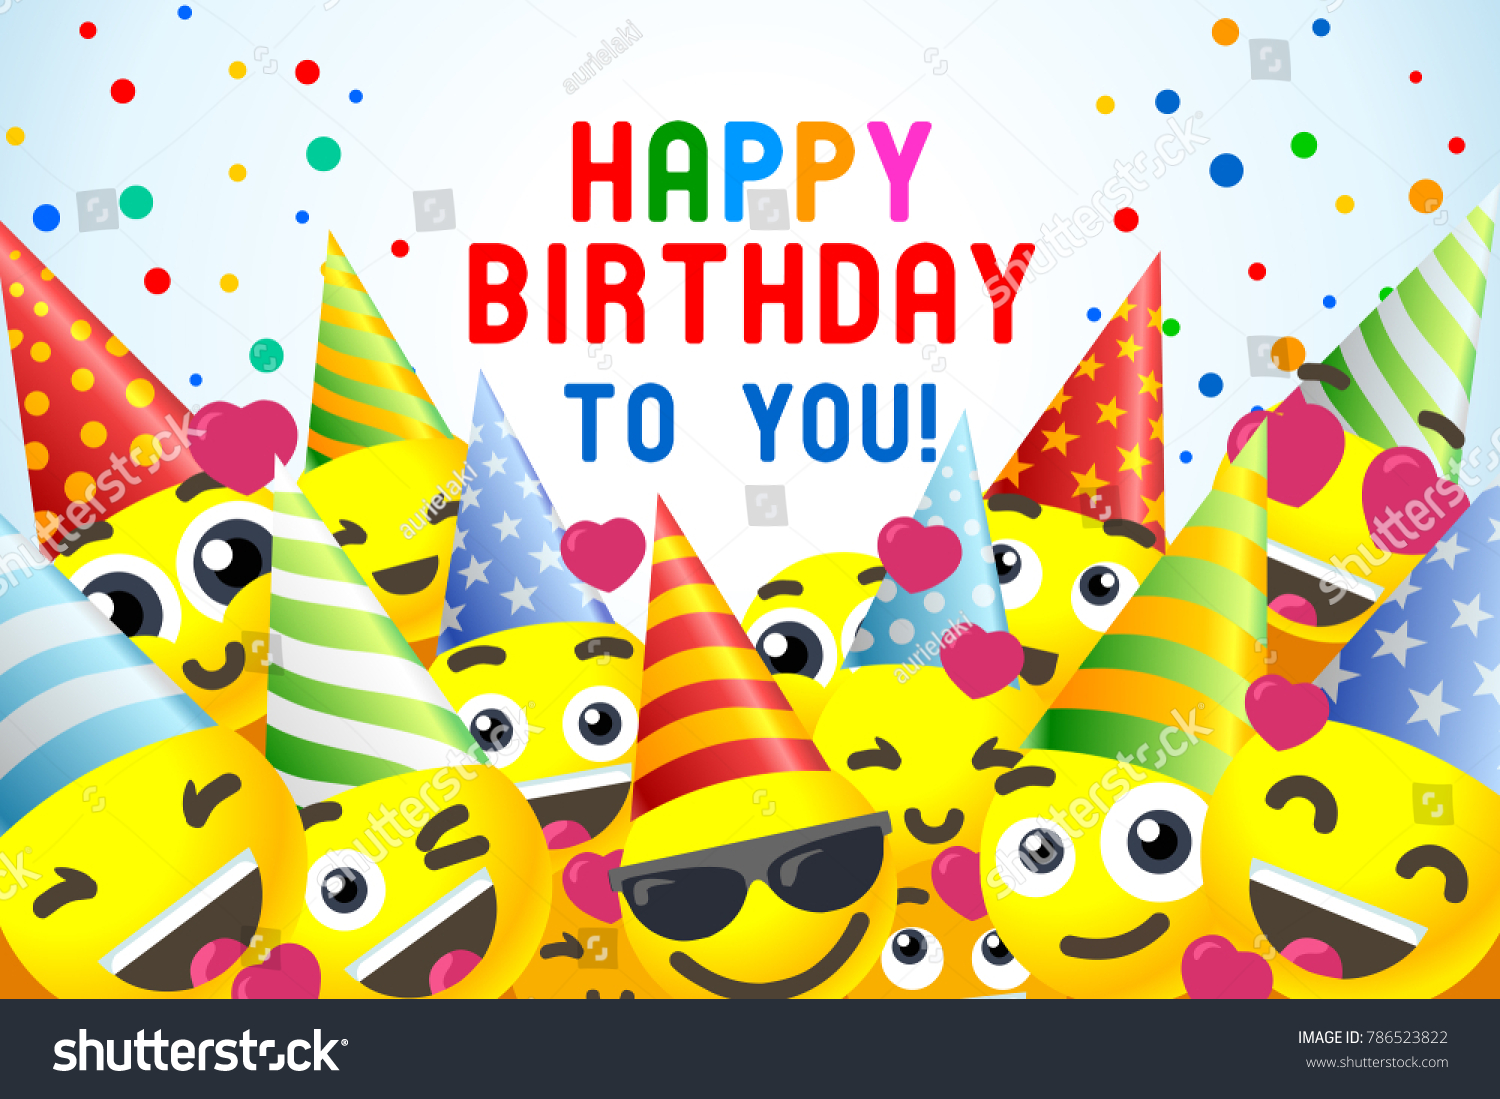 Royalty Free Stock Illustration Of Happy Birthday Background 3 D